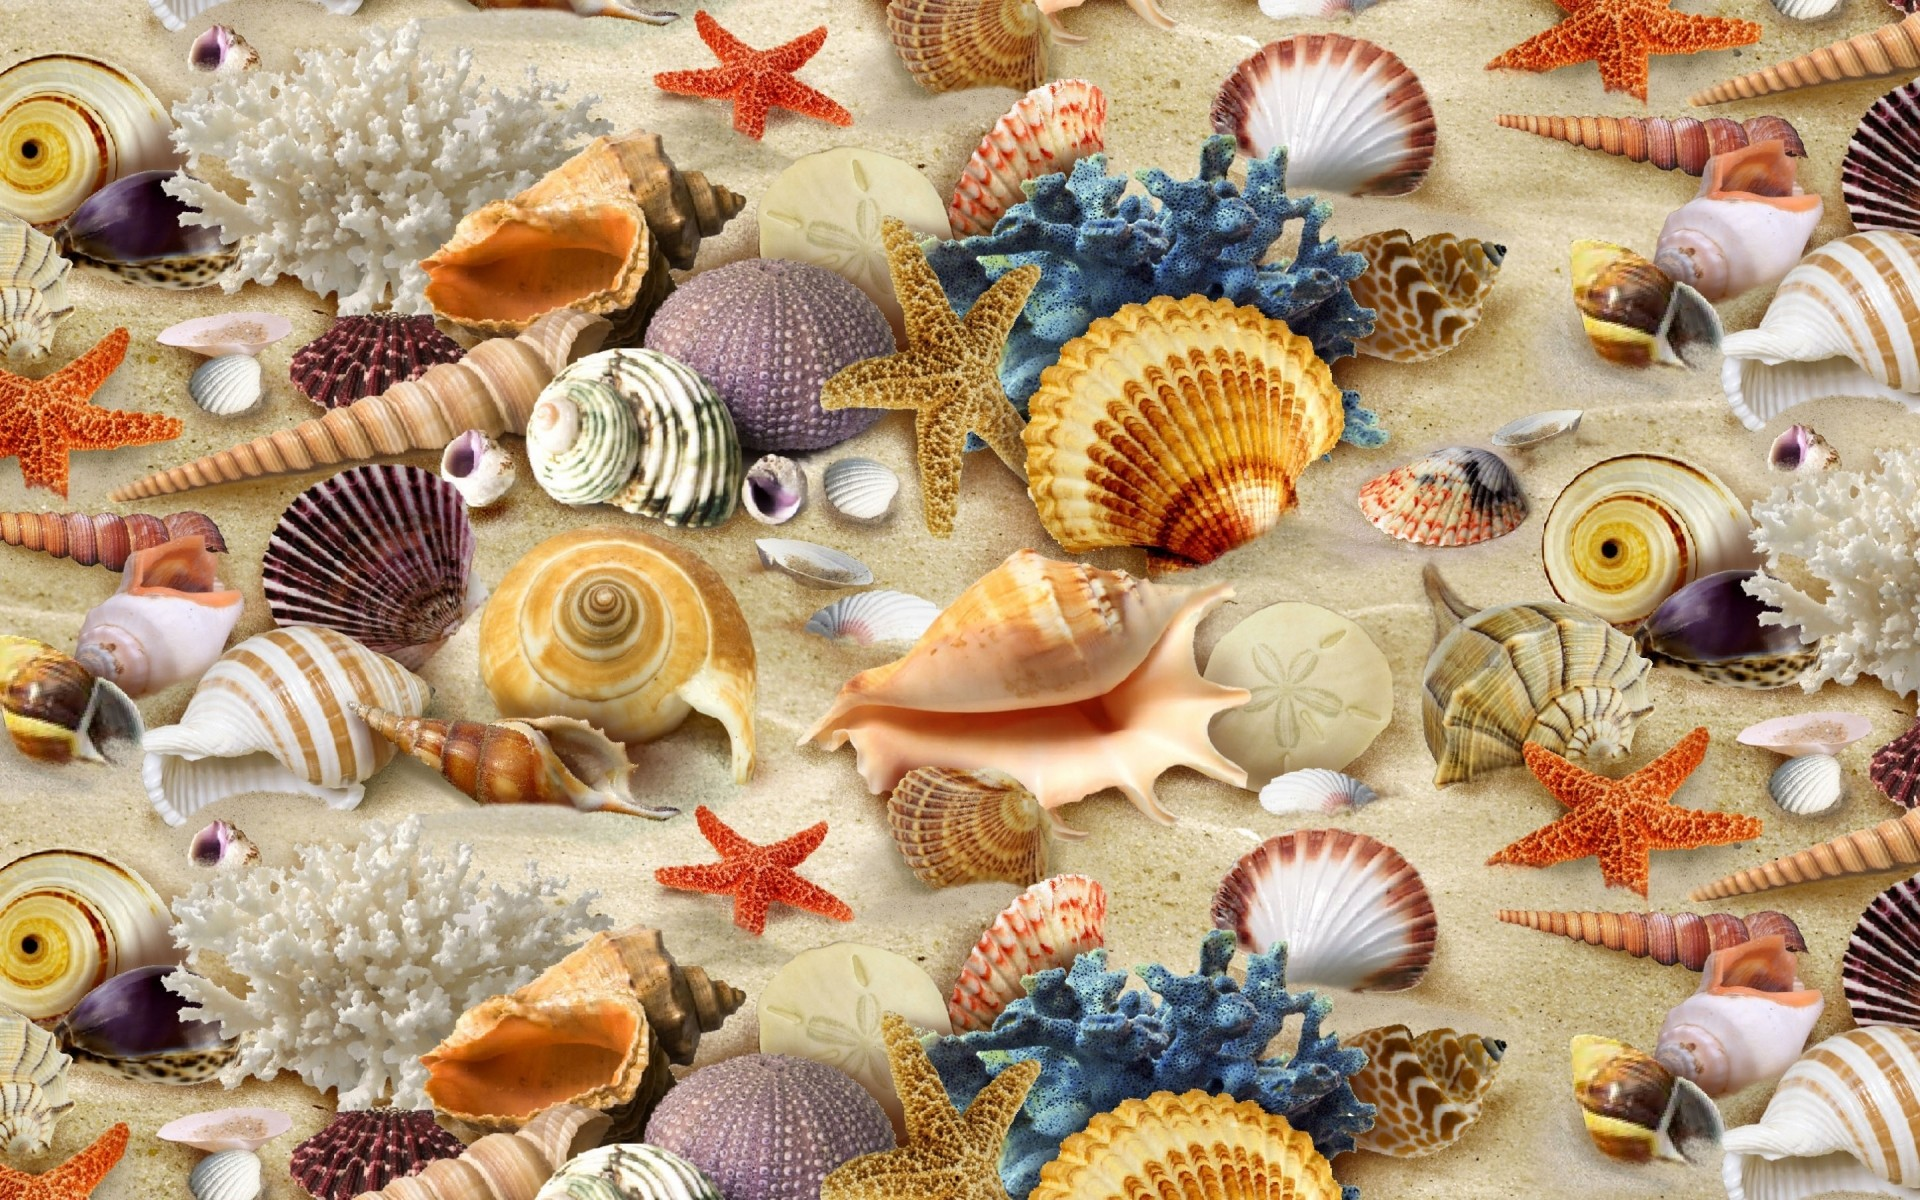 summer seashell starfish shell marine souvenir decoration shellfish sea conch scallop cockle snail desktop clam collection vacation cockleshell beach shells corals sand gorgeous